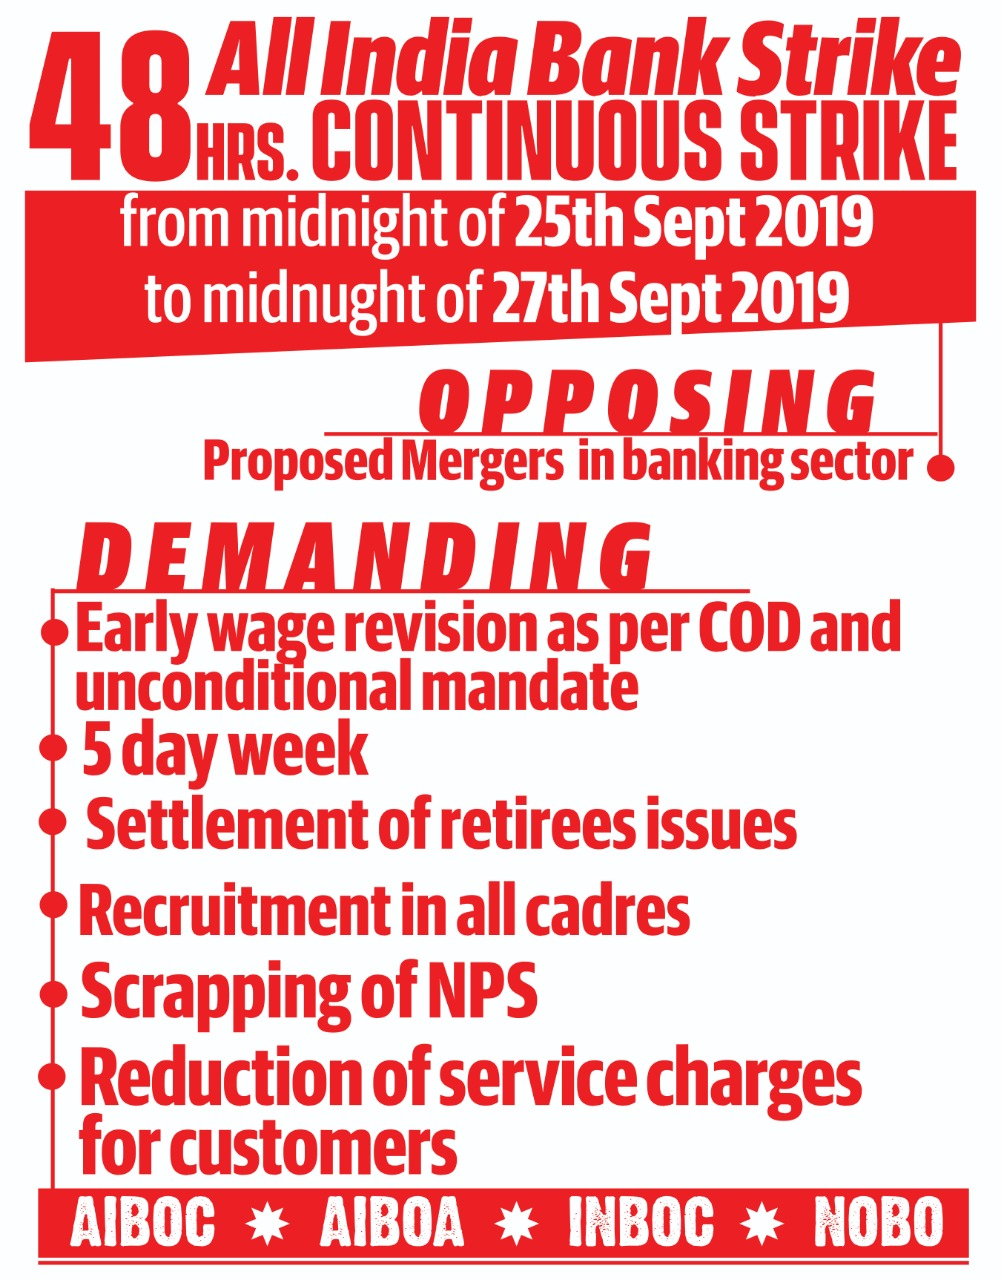 48 Hours Continuous Strike from 25th Midnight to 27th Midnight in September 2019